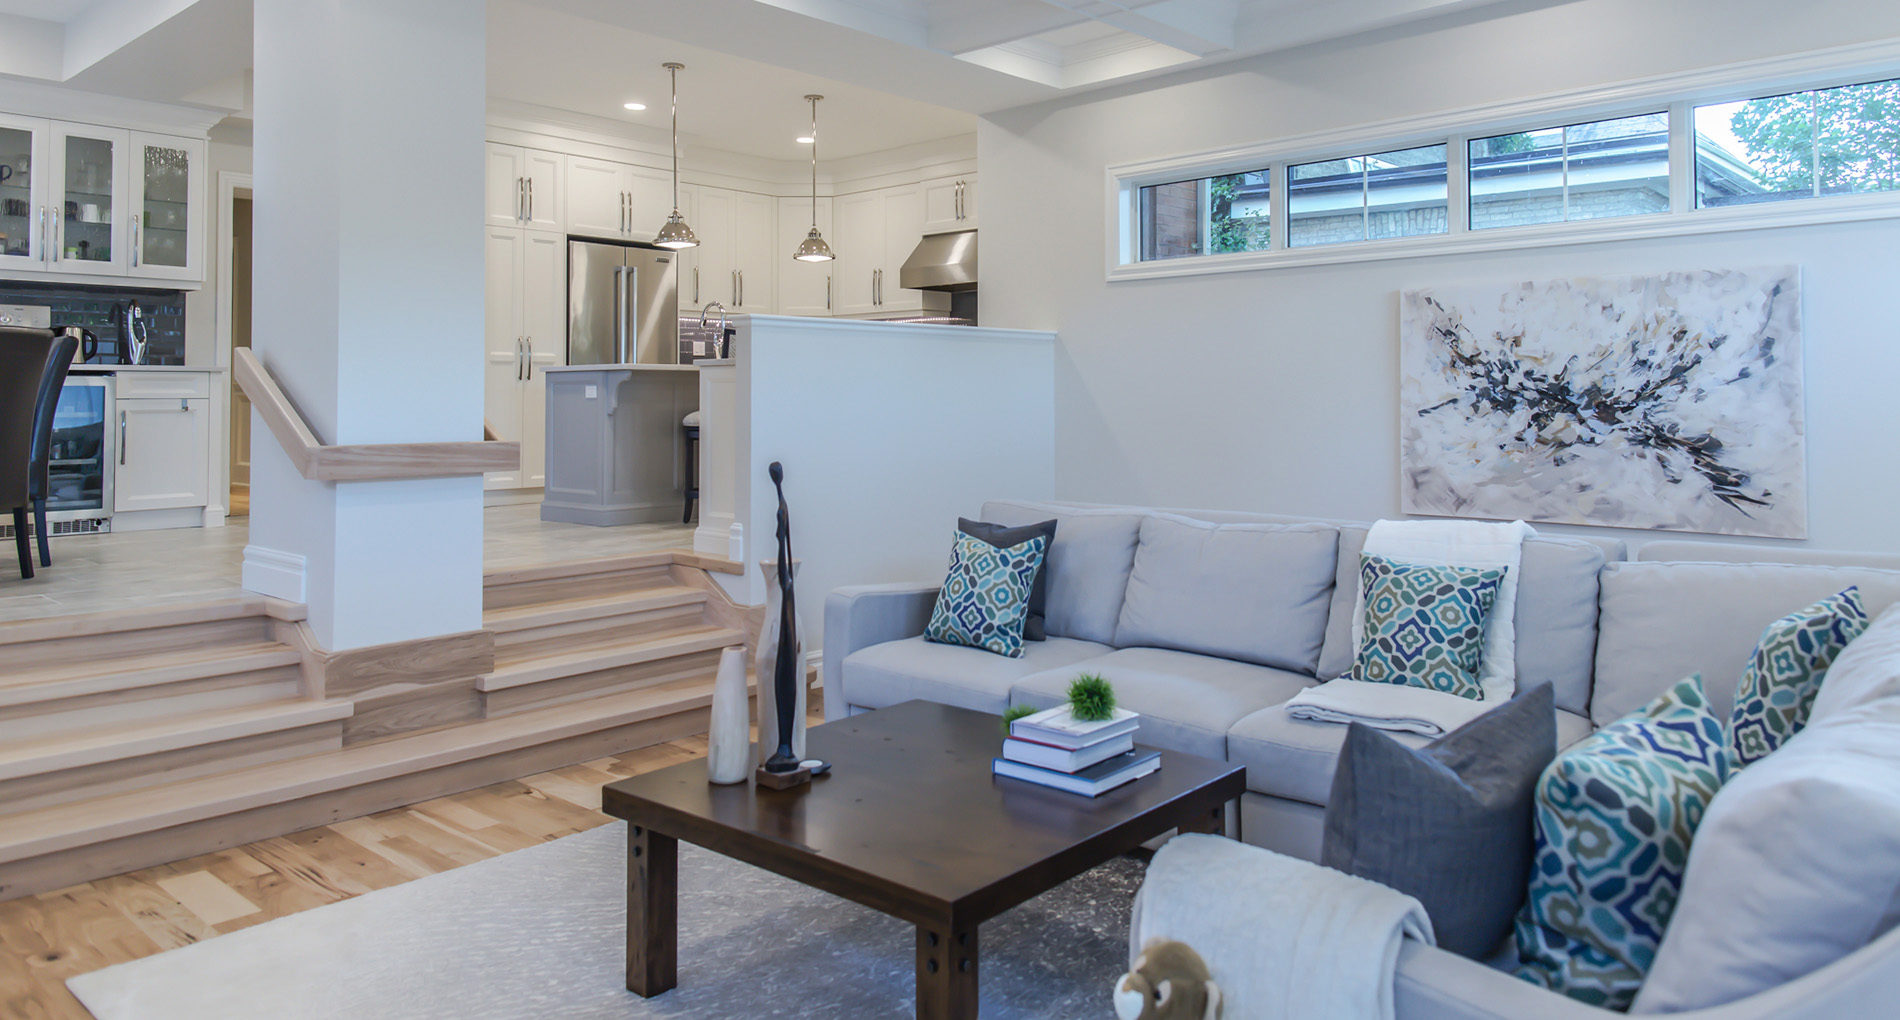 Home Remodeling & Renovations in Houston   Alair Homes Houston